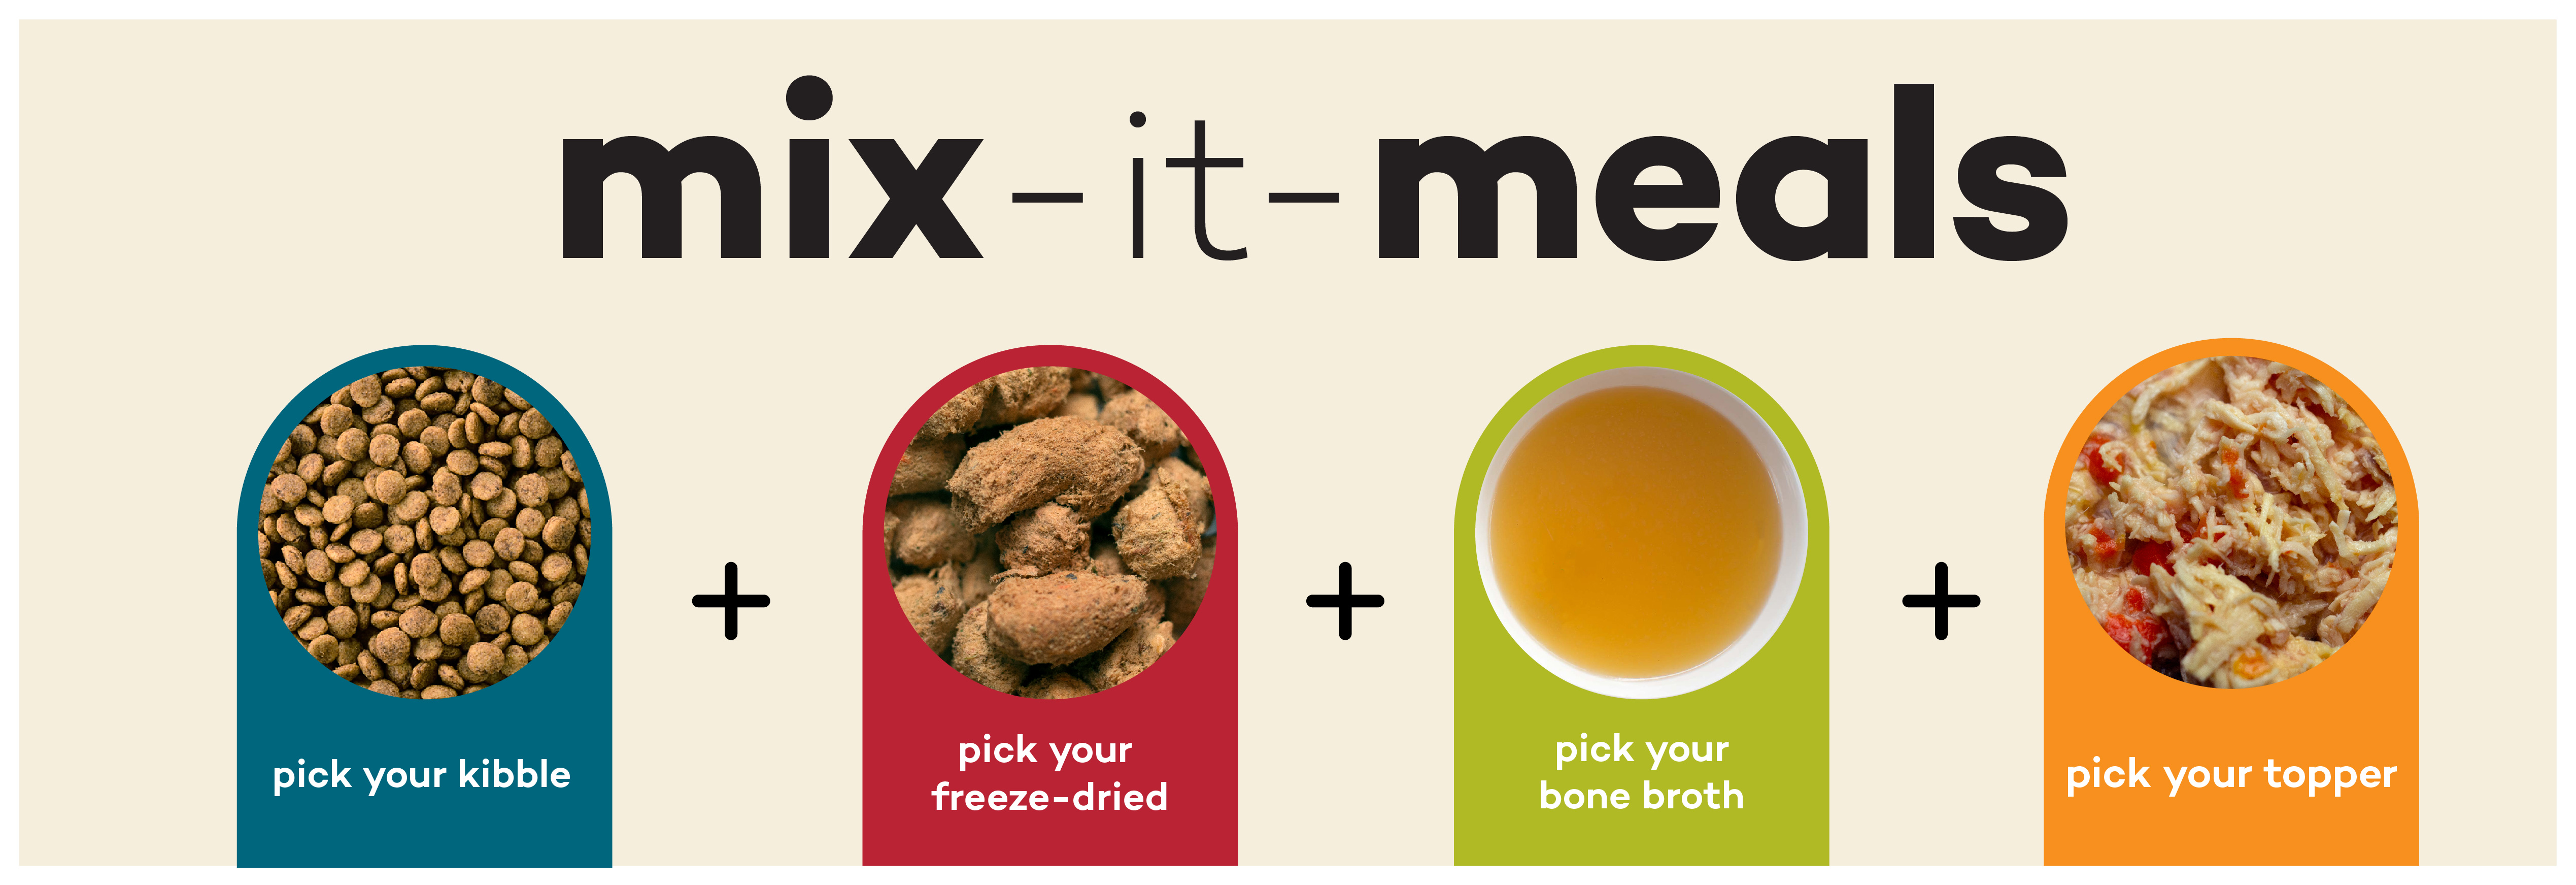 Click here to learn about mix-and-match foods